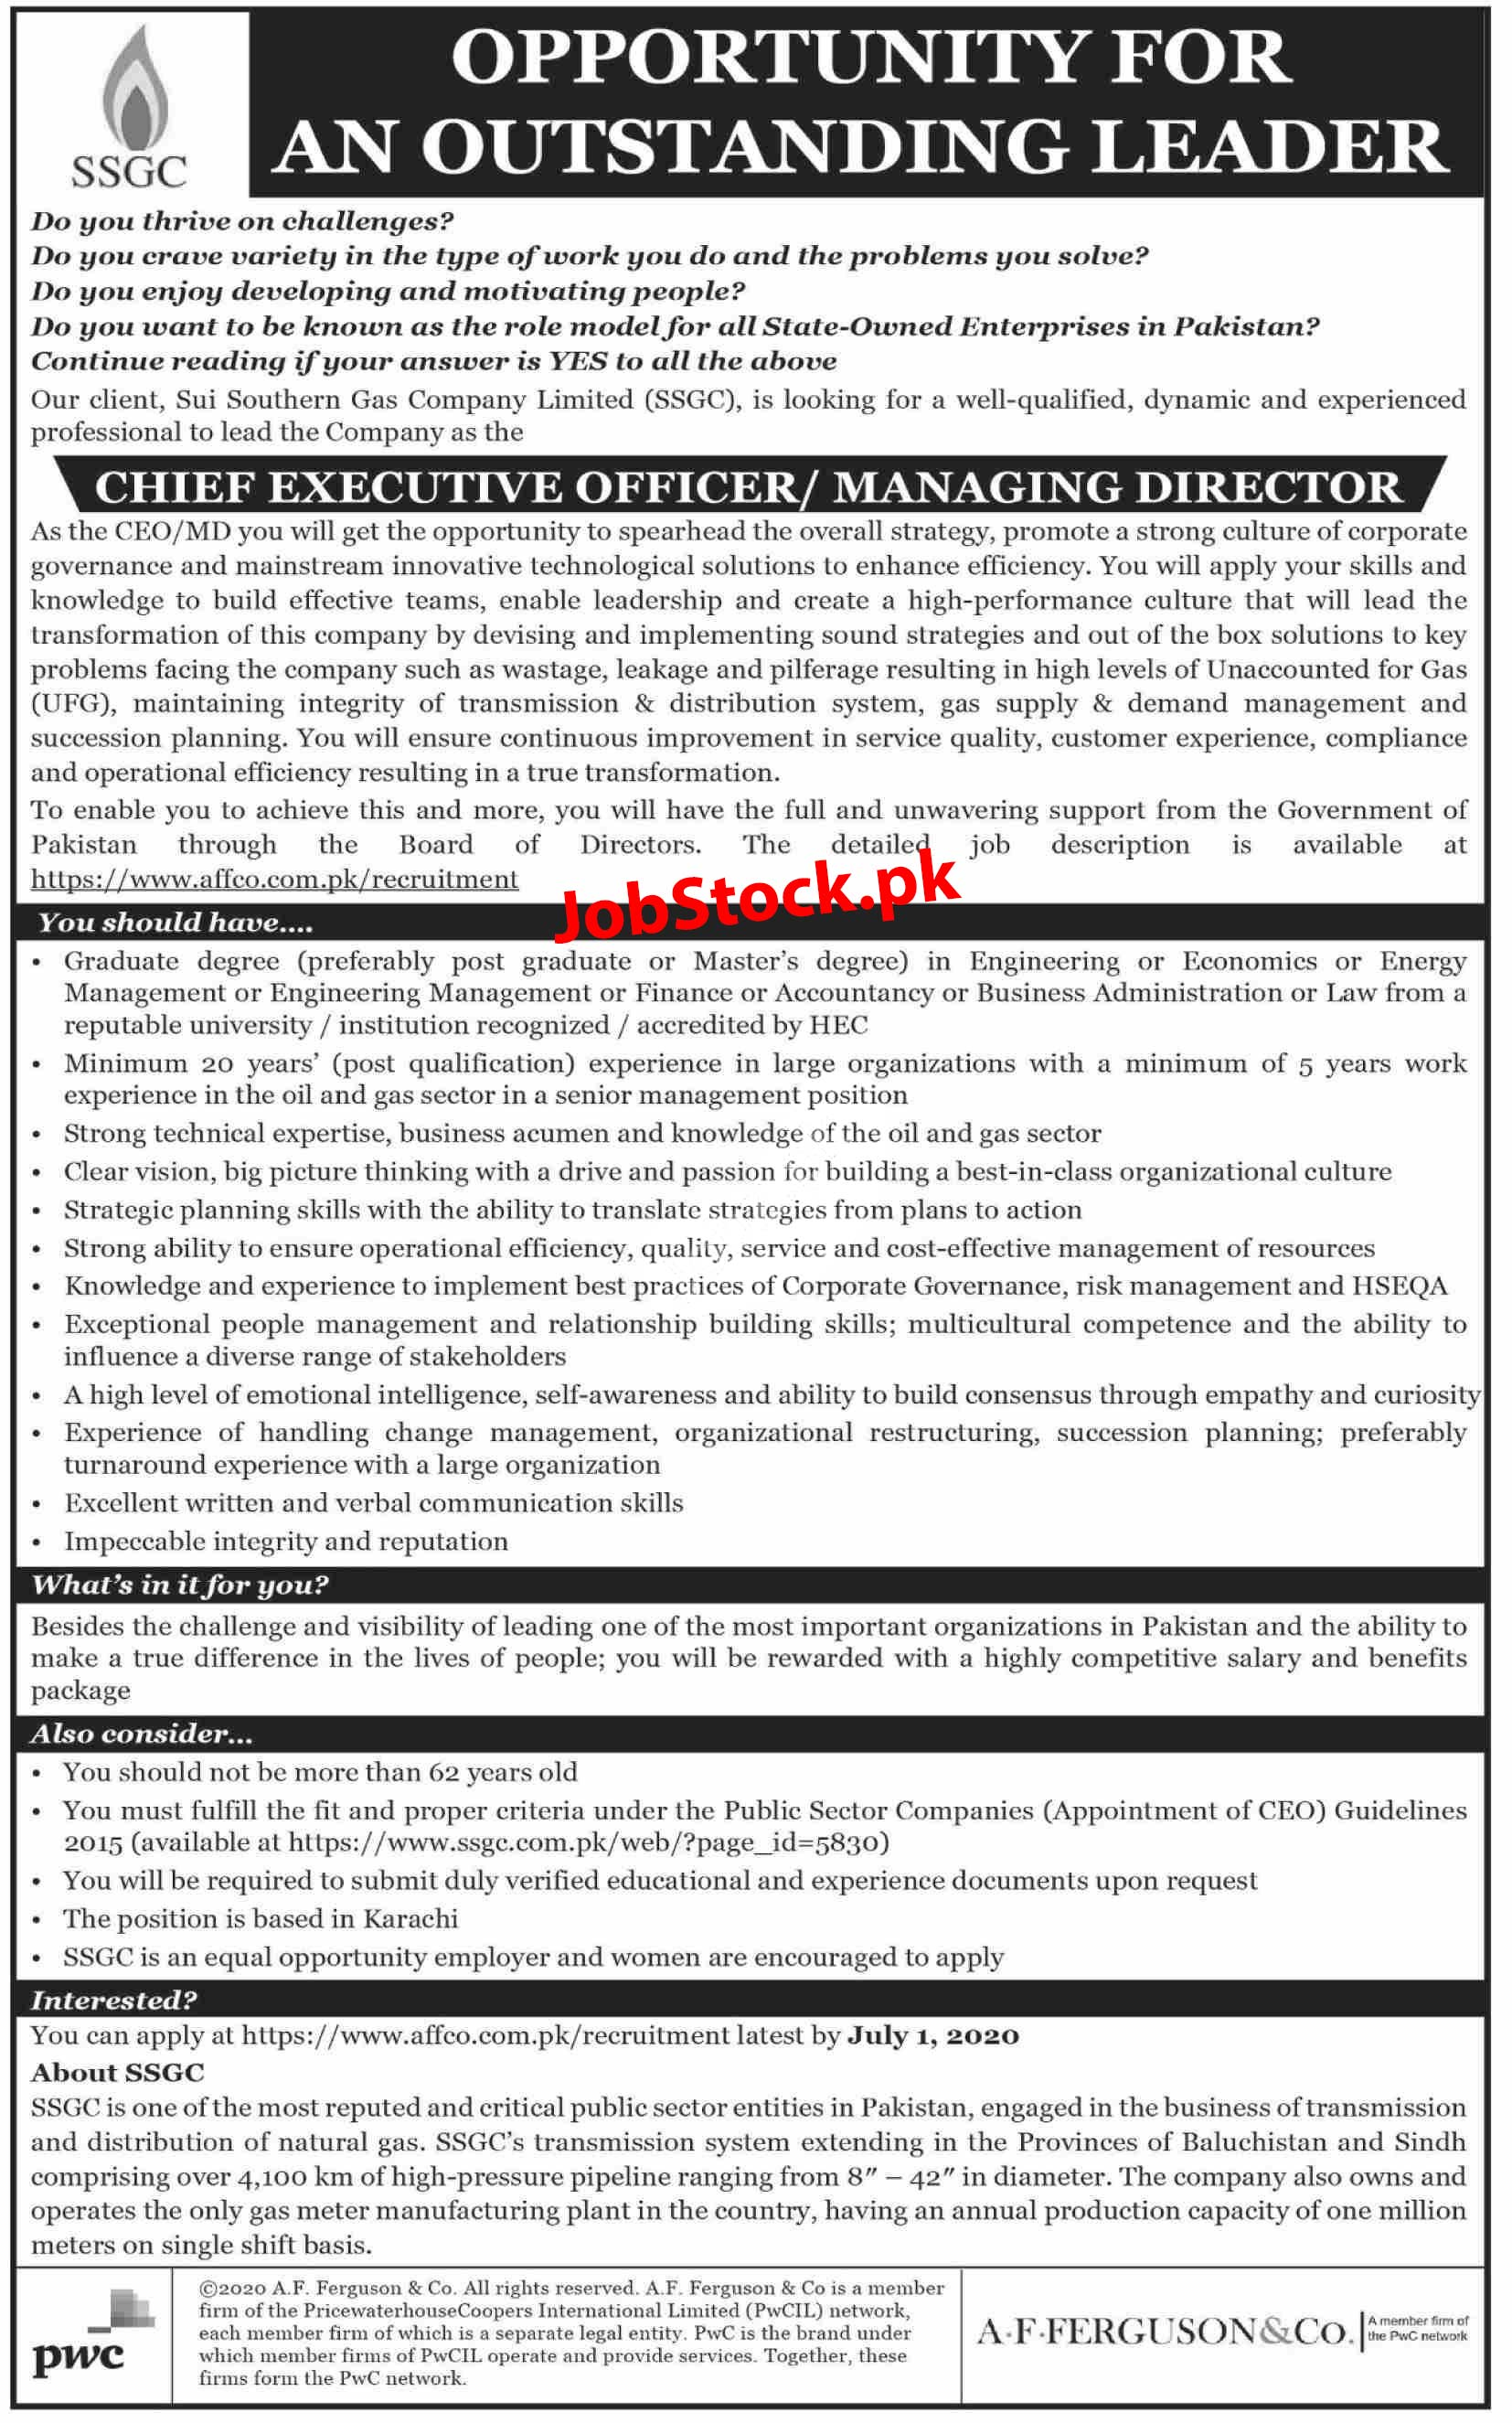 Jobs In Ssgc Sui Southern Gas Company Limited Karachi 2020